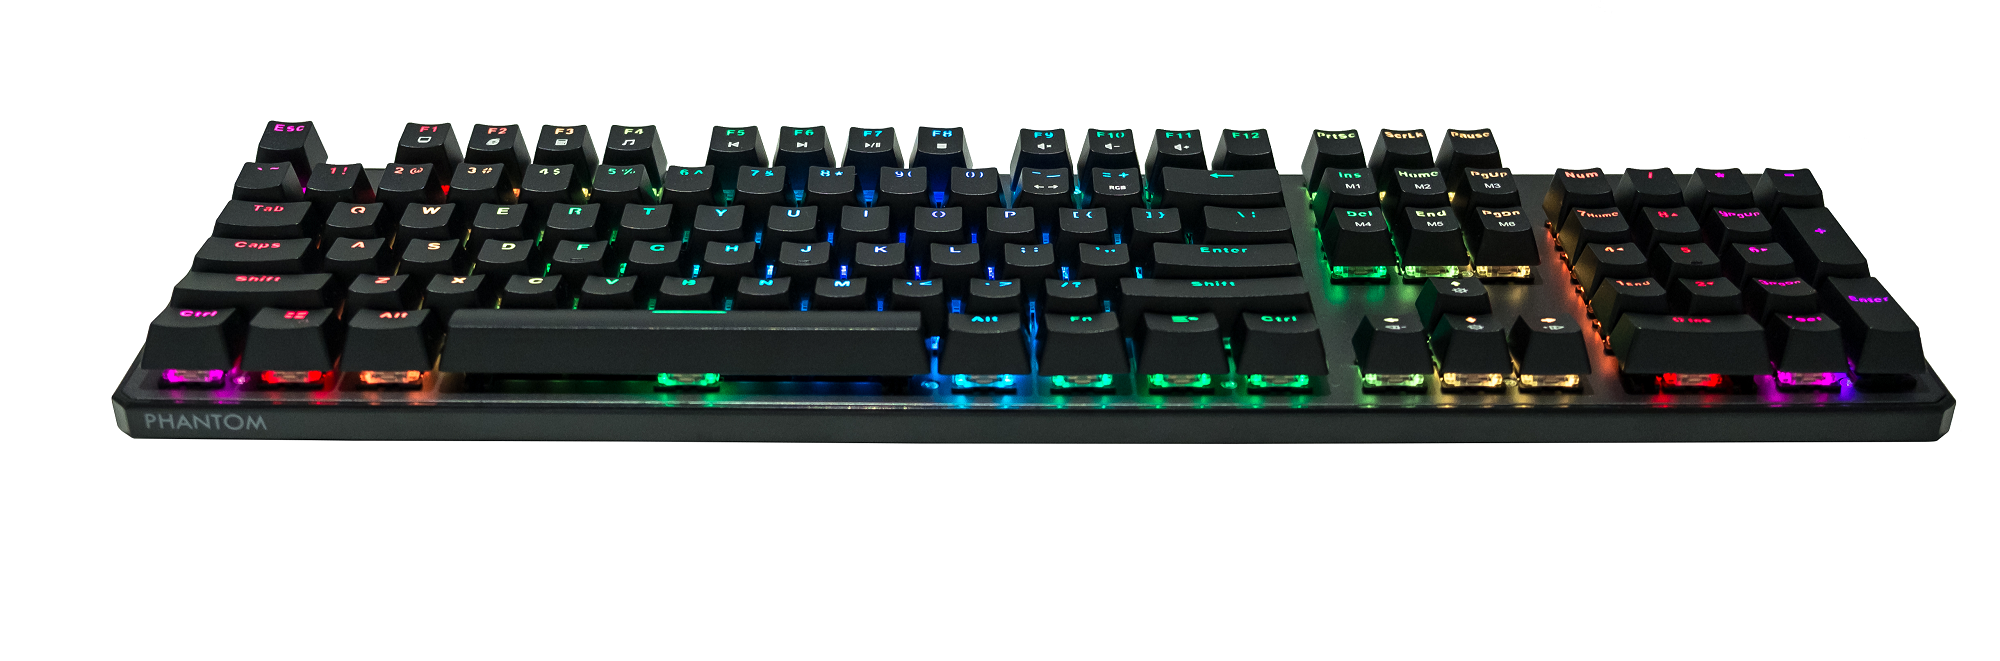 Phantom Mechanical Keyboard | Tecware Keyboards